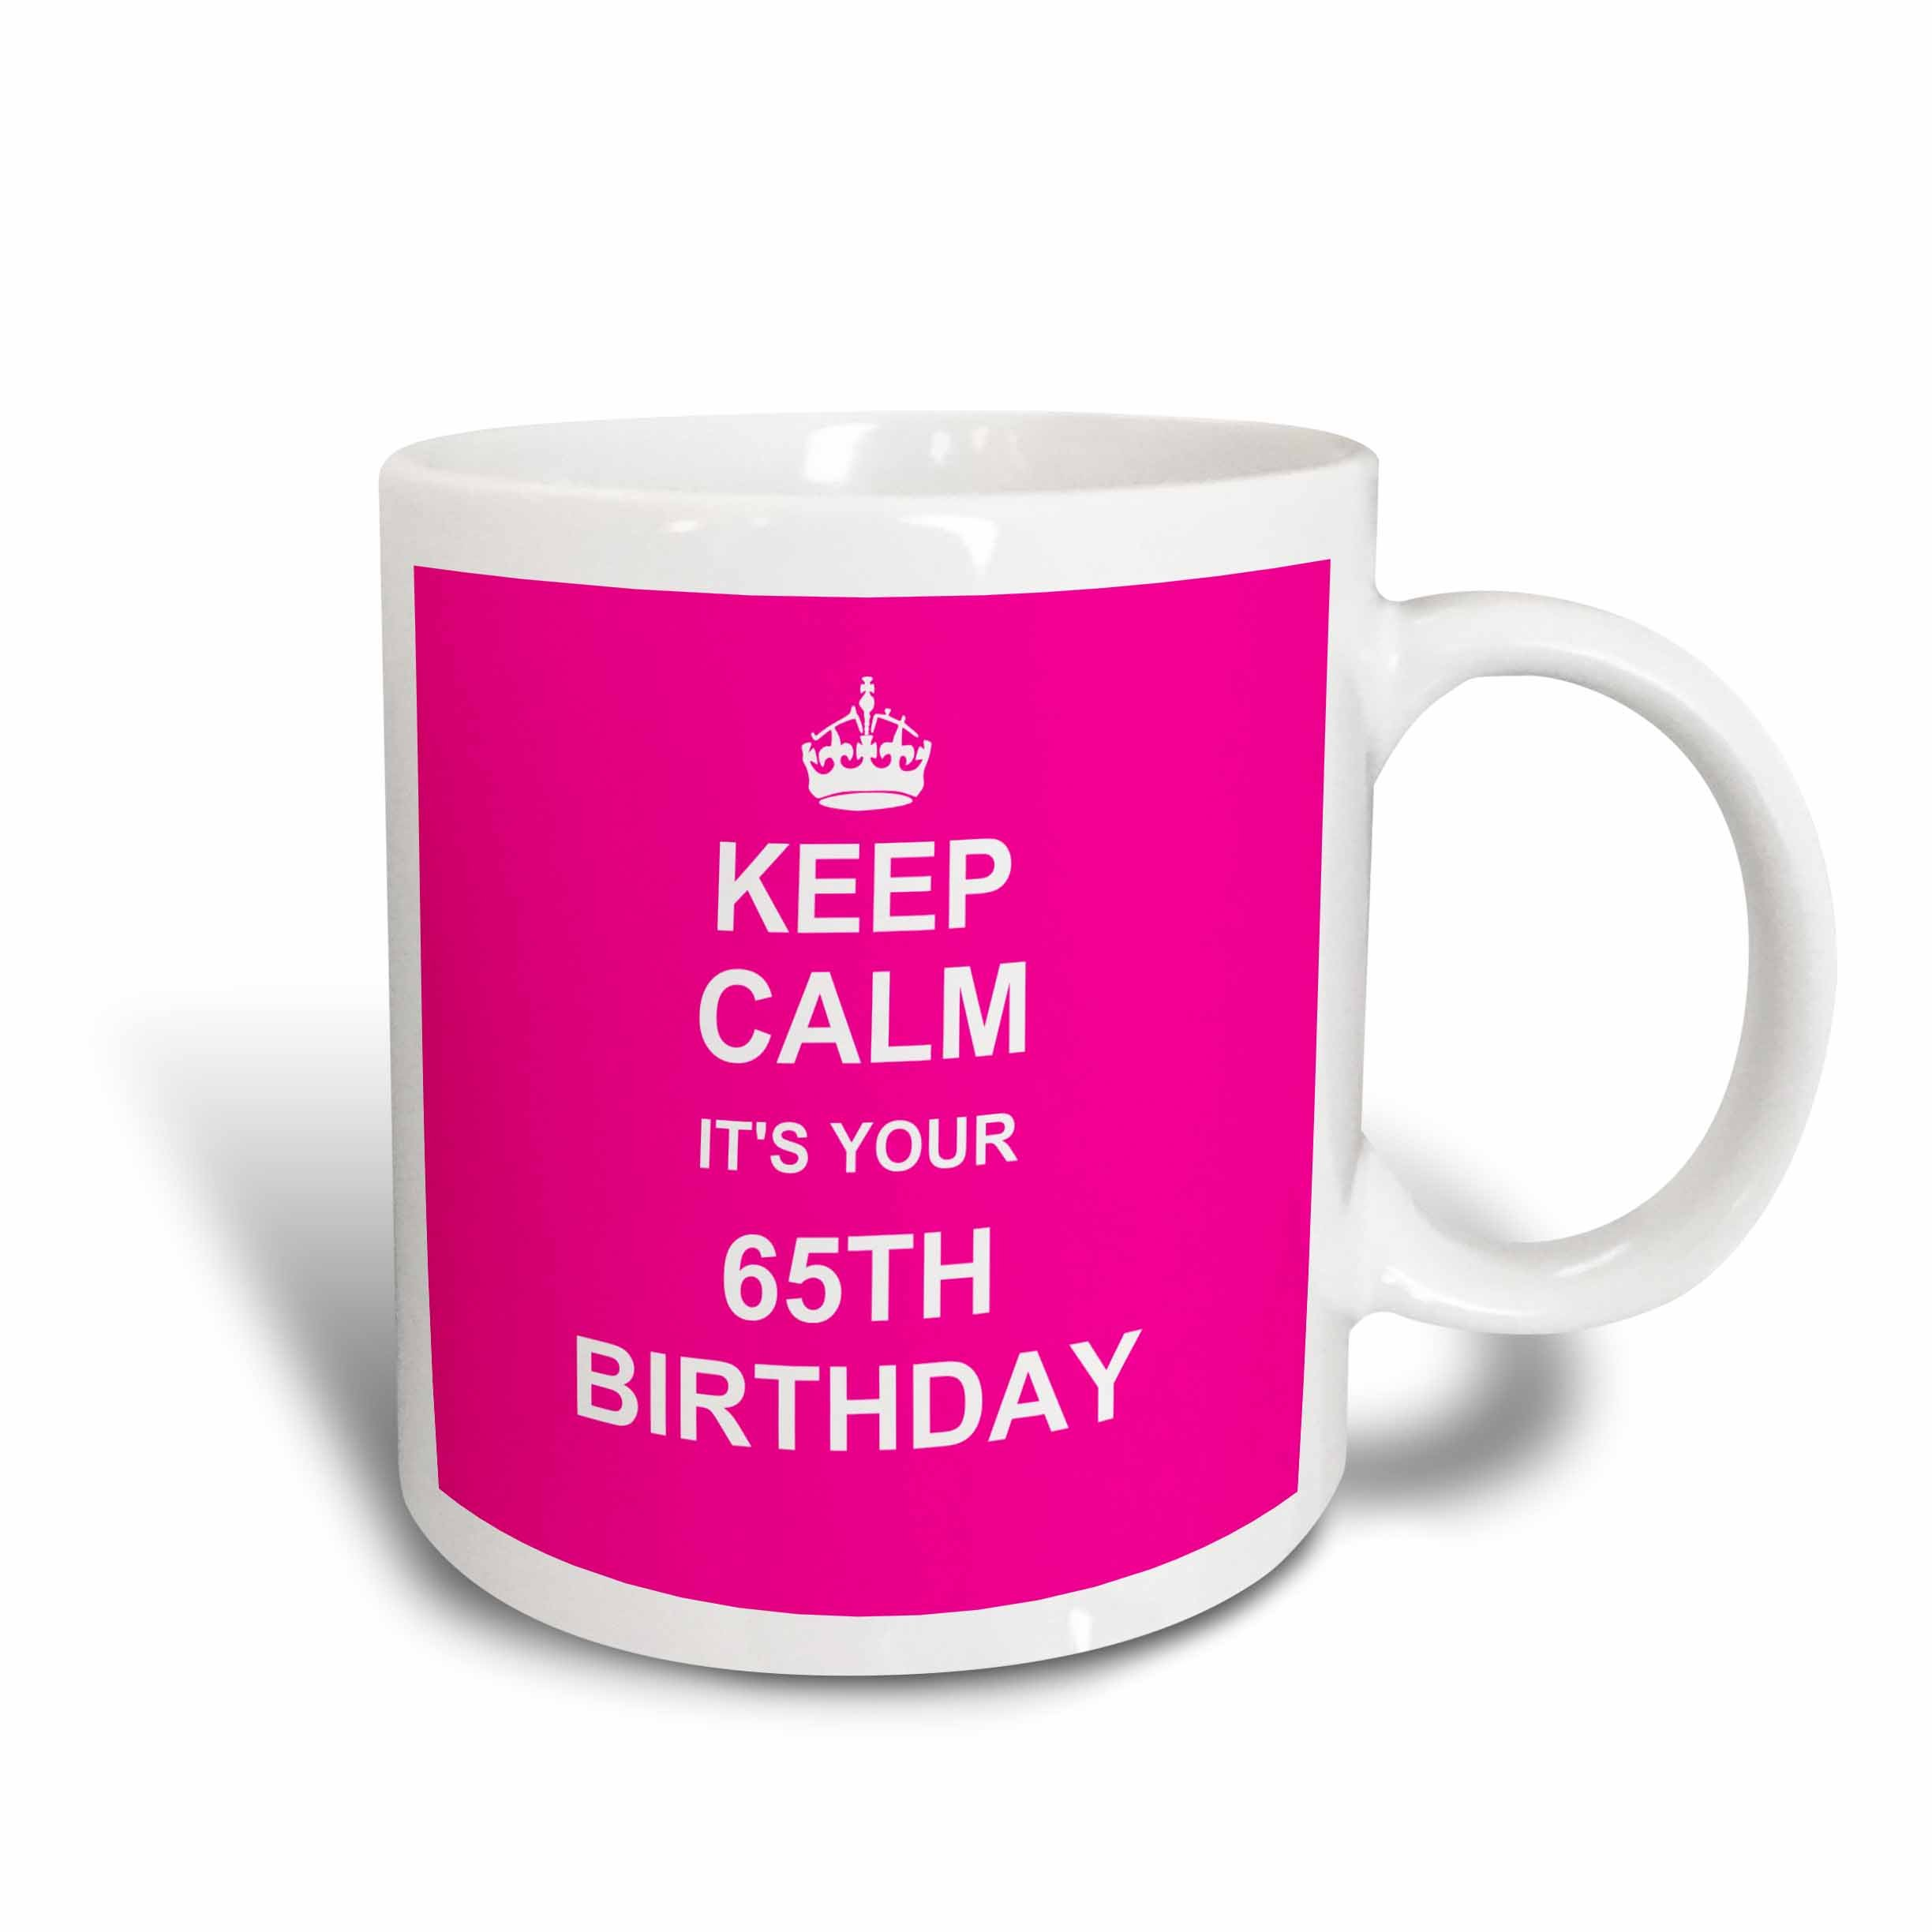 3dRose mug_157672_1 Keep Calm its Your 65th Birthday Hot Pink Girly Girls Stay Calm & Carry on About Turning 65 Humor Ceramic Mug, 11 oz, White